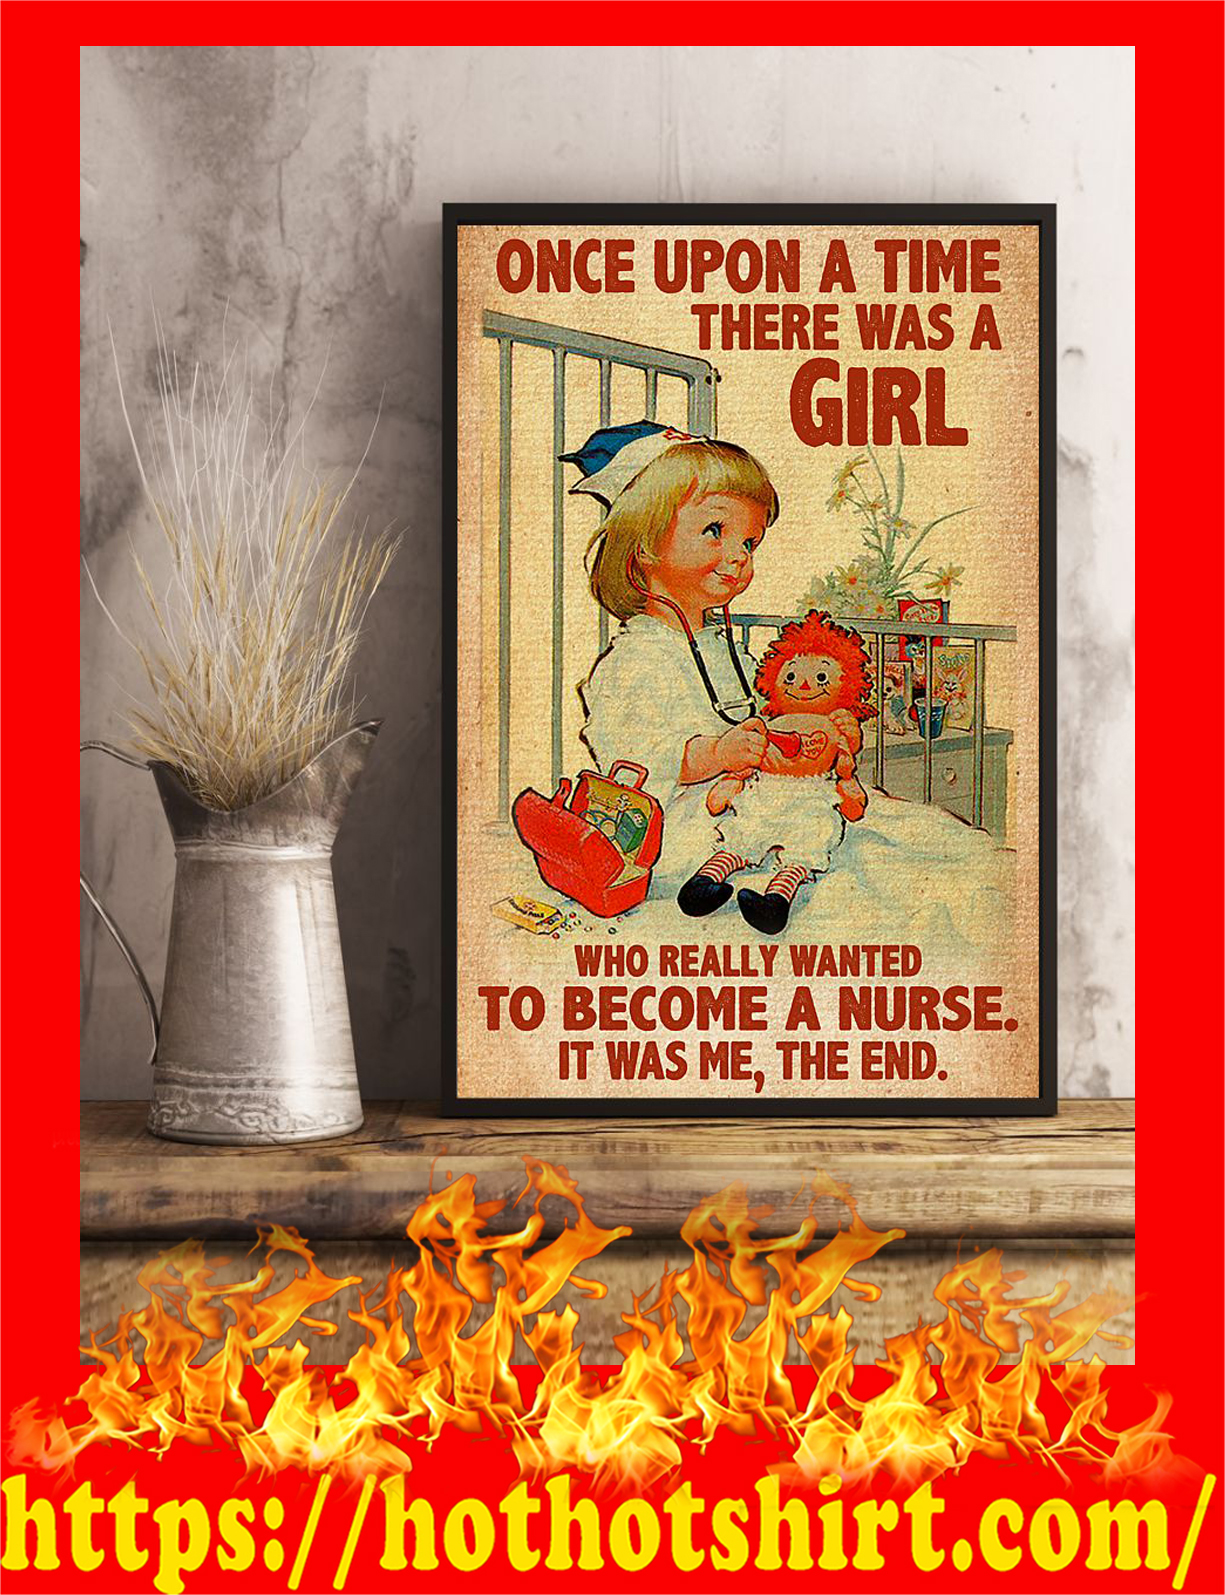 There was a girl who really wanted to become a nurse poster - pic 2